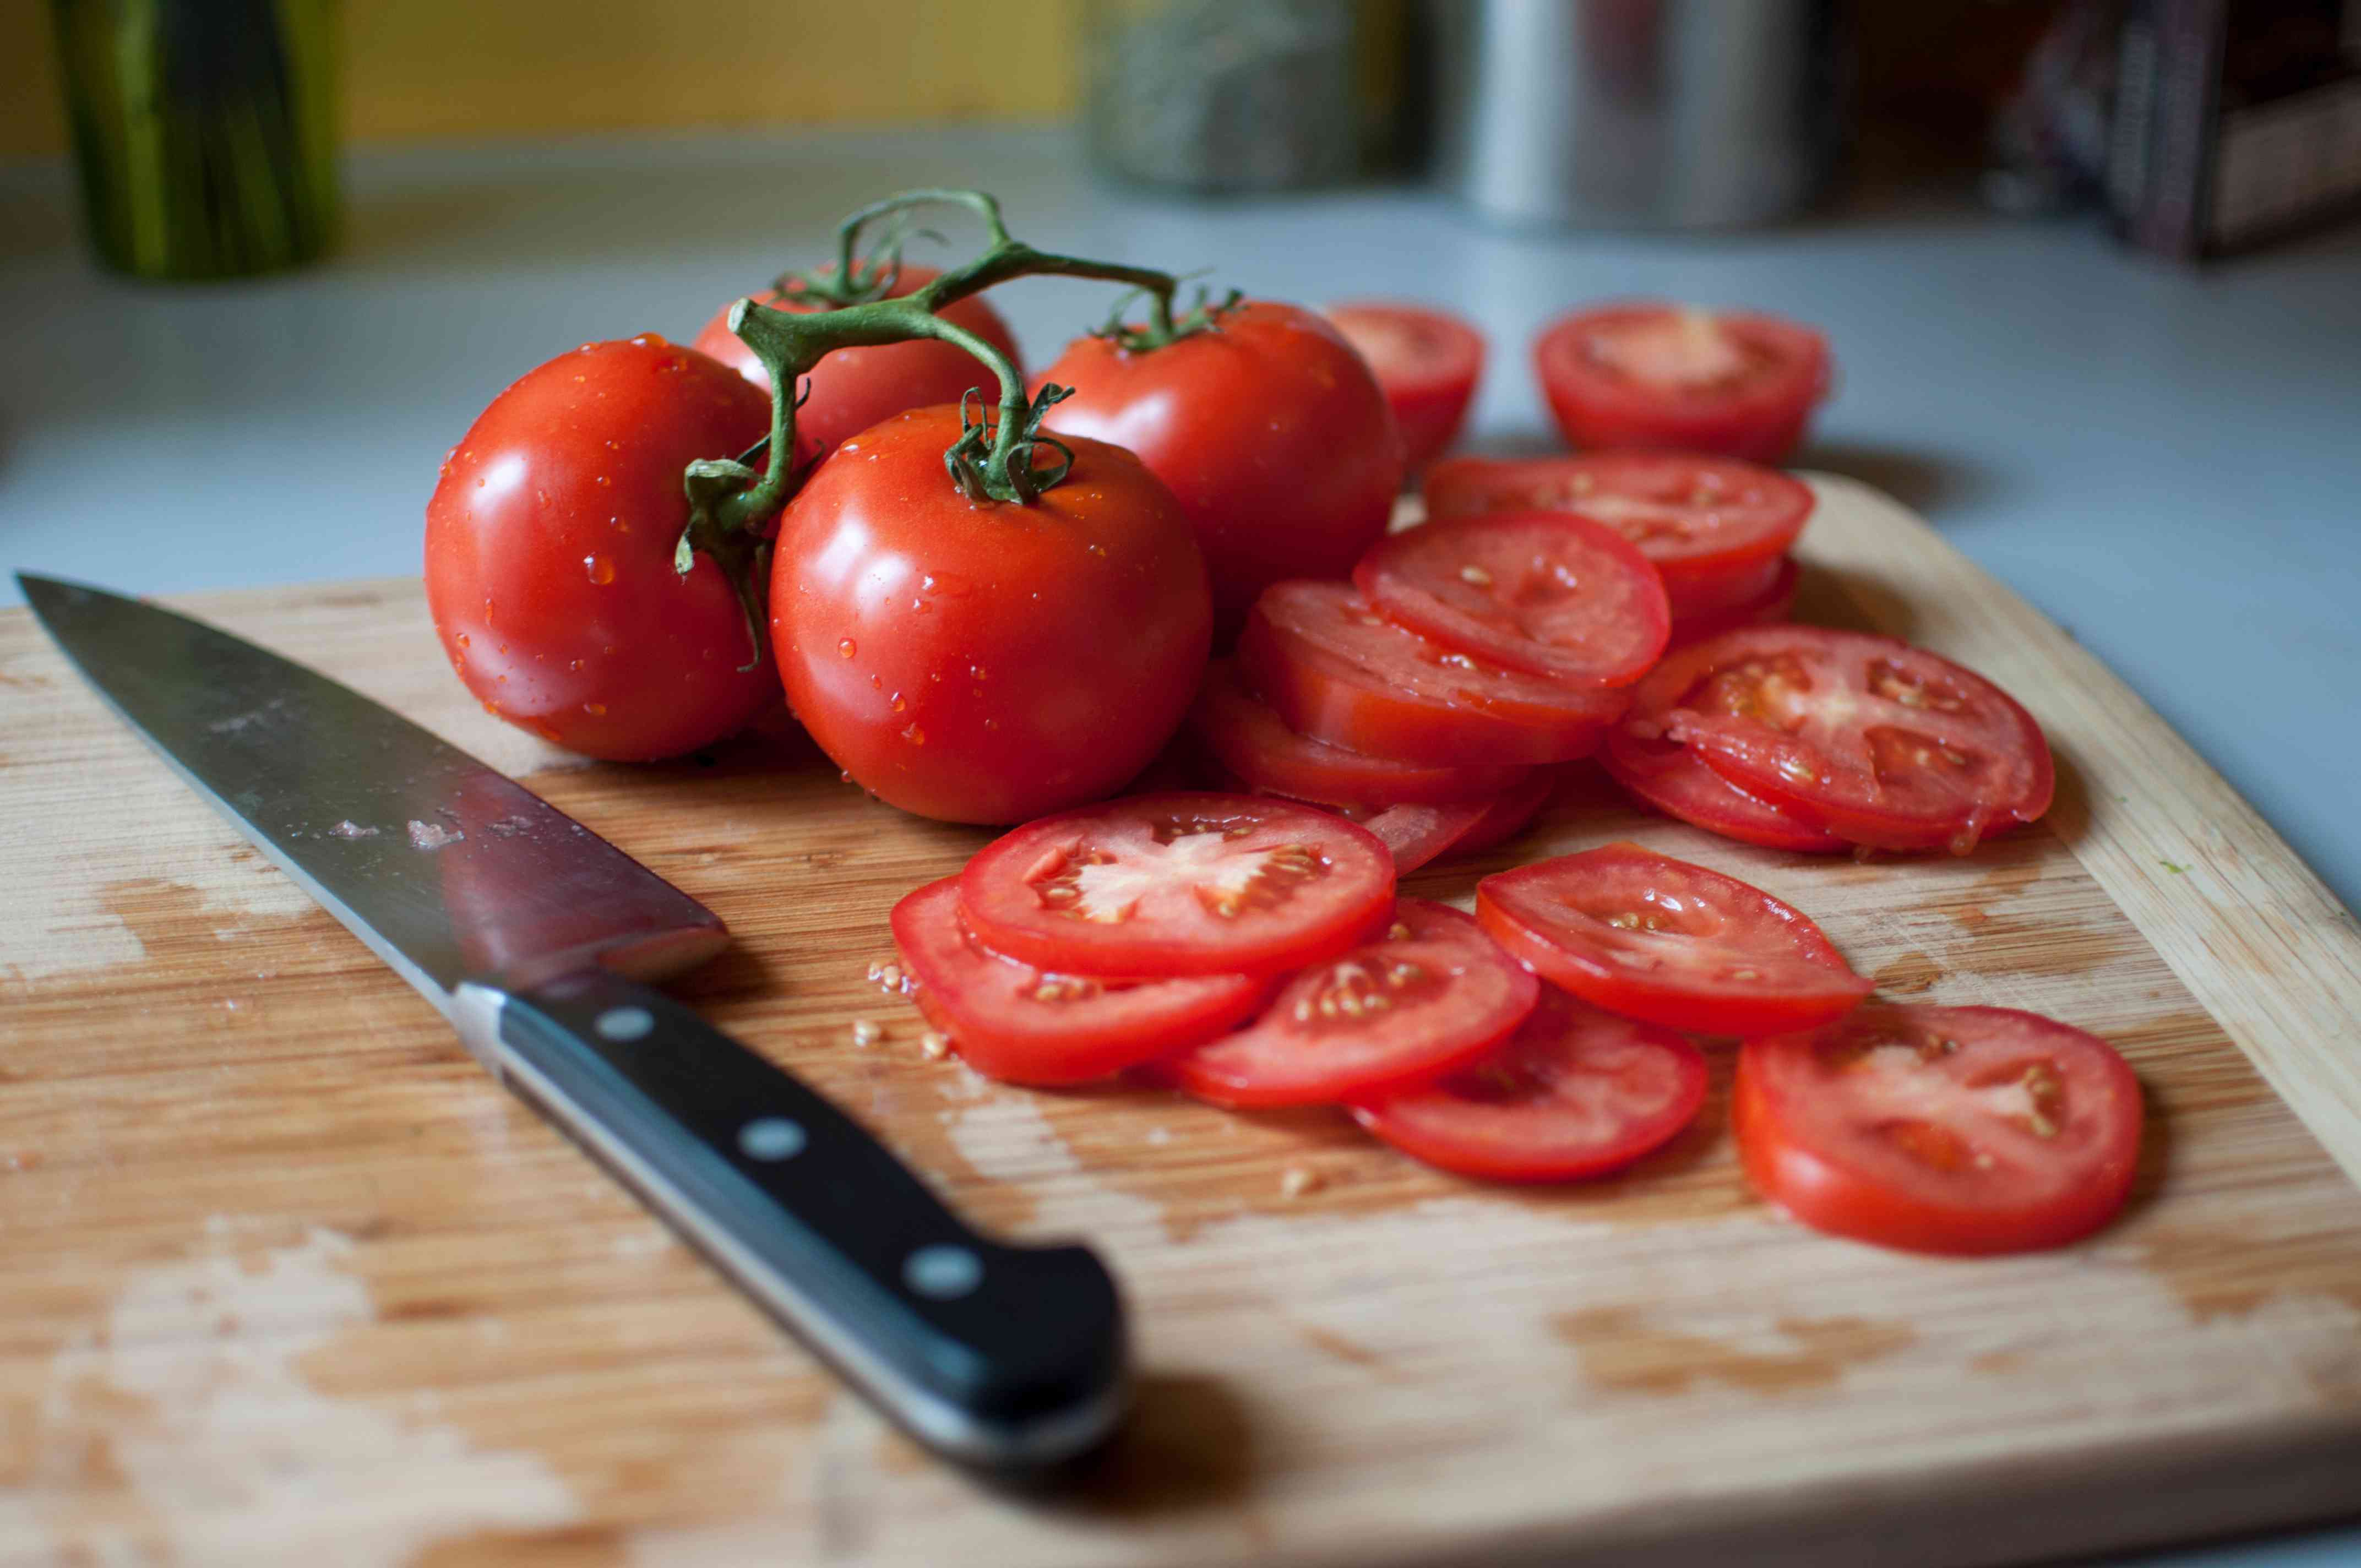 Whole and sliced tomatoes on a cutting board alongside a knife